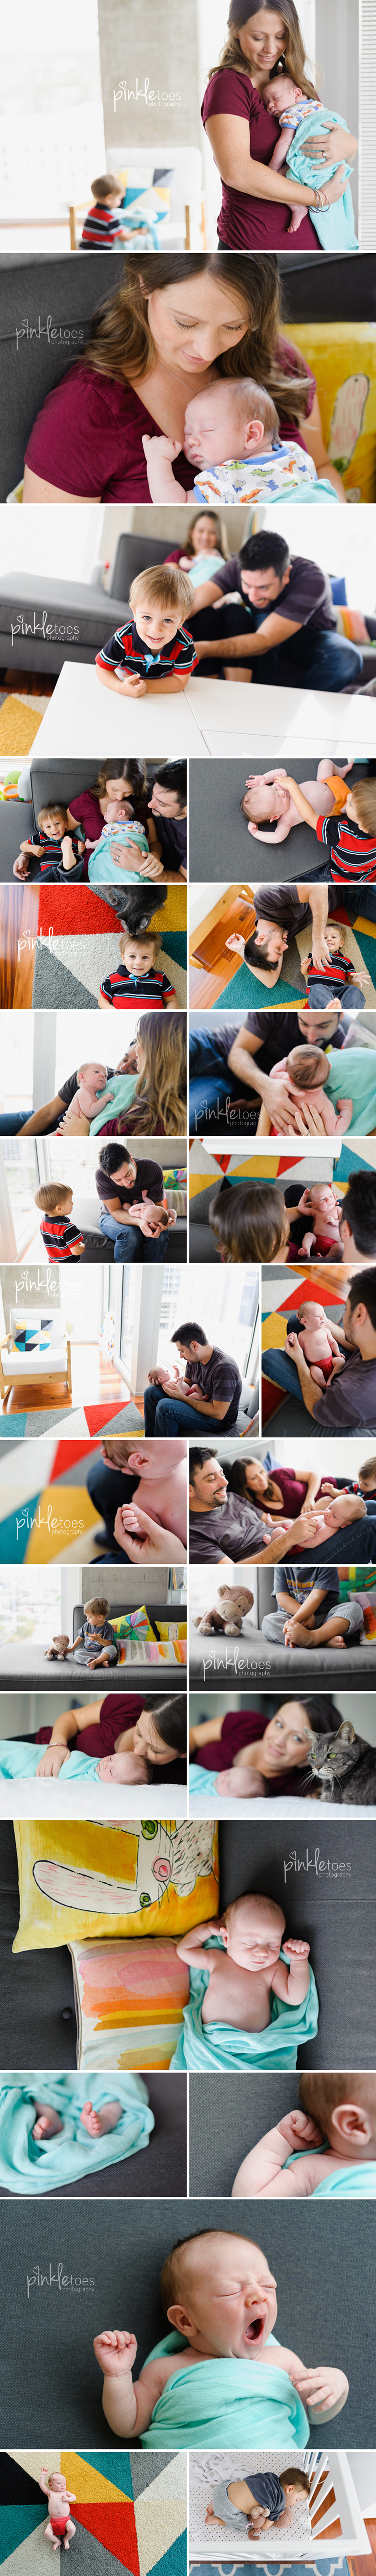 nu-modern-lifestyle-austin-family-newborn-baby-photographer